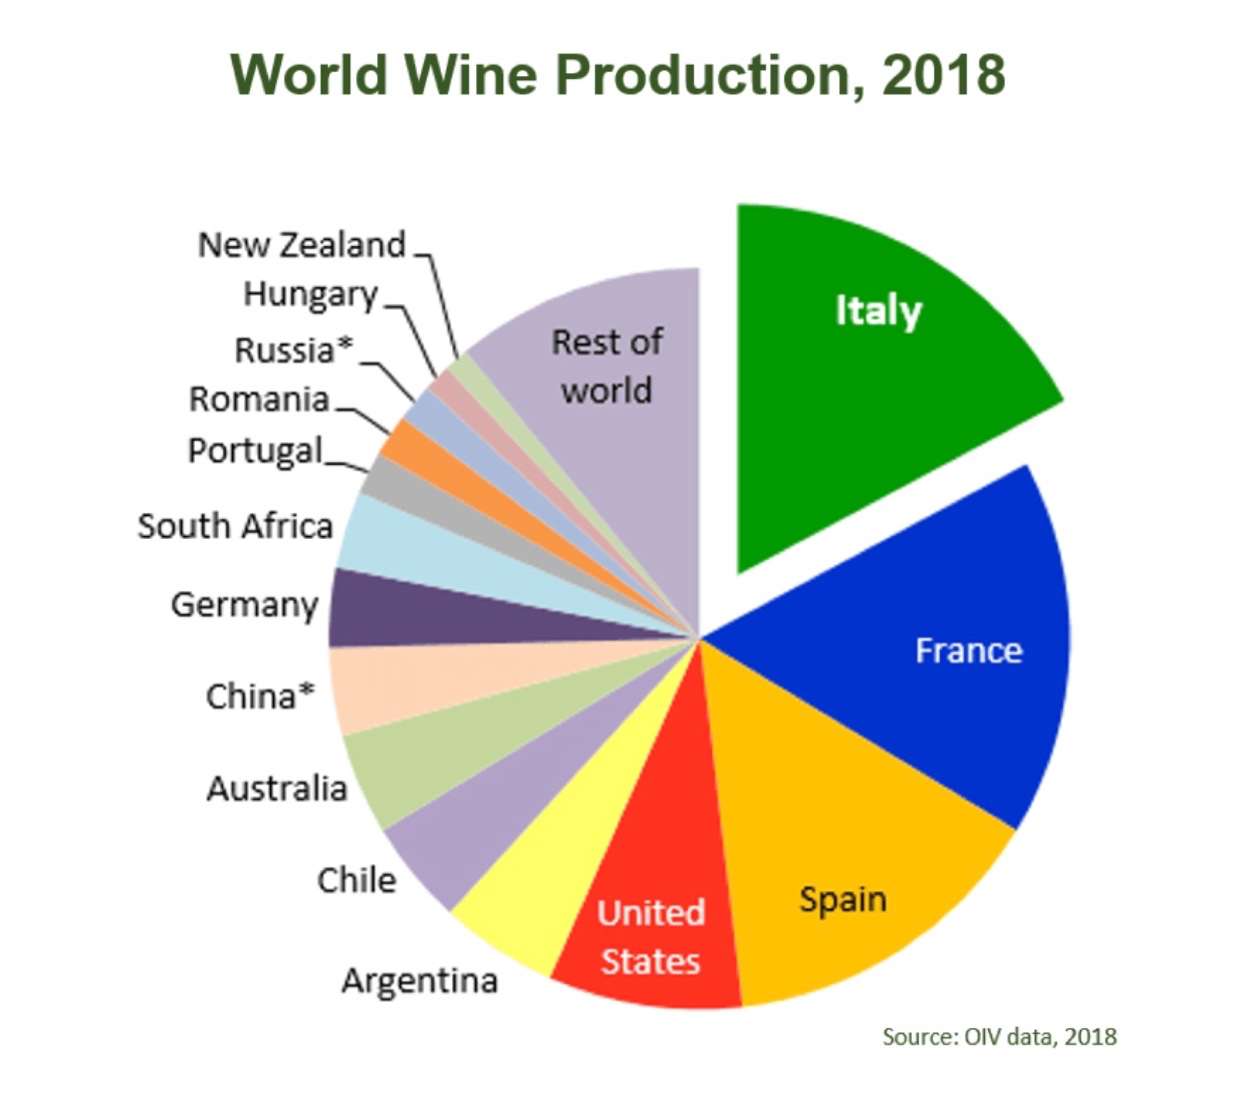 France and Spain are close behind Italy for top wine producing honors (with credit and thanks to  italianwinecentral.com  and the  International Organization of Vine and Wine  for the data and chart).